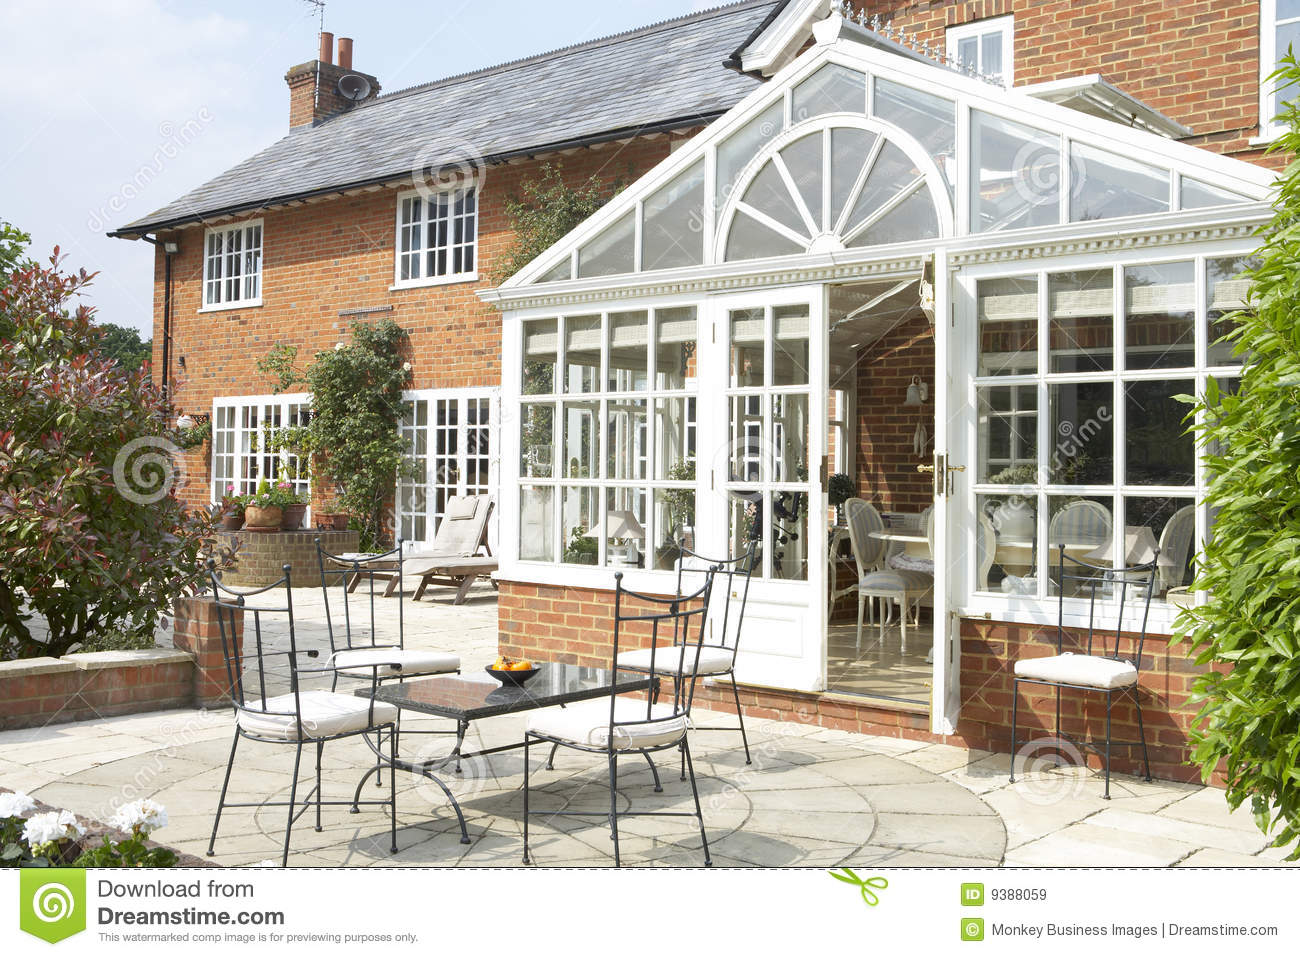 ... With Conservatory And Patio Royalty Free Stock Images - Image: 9388059